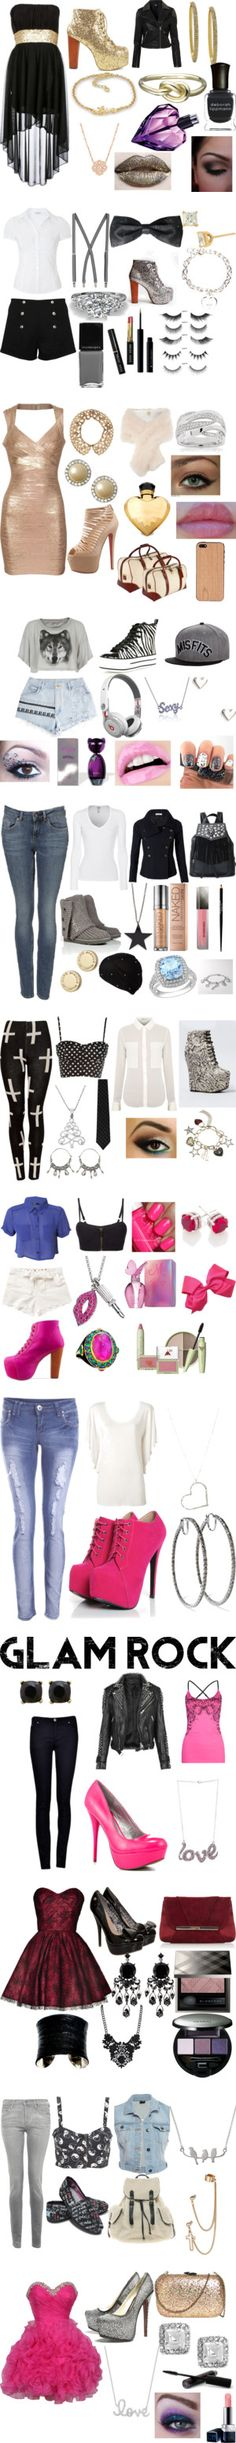 """""""My favorites"""" by mecca-tiana ❤ liked on Polyvore"""